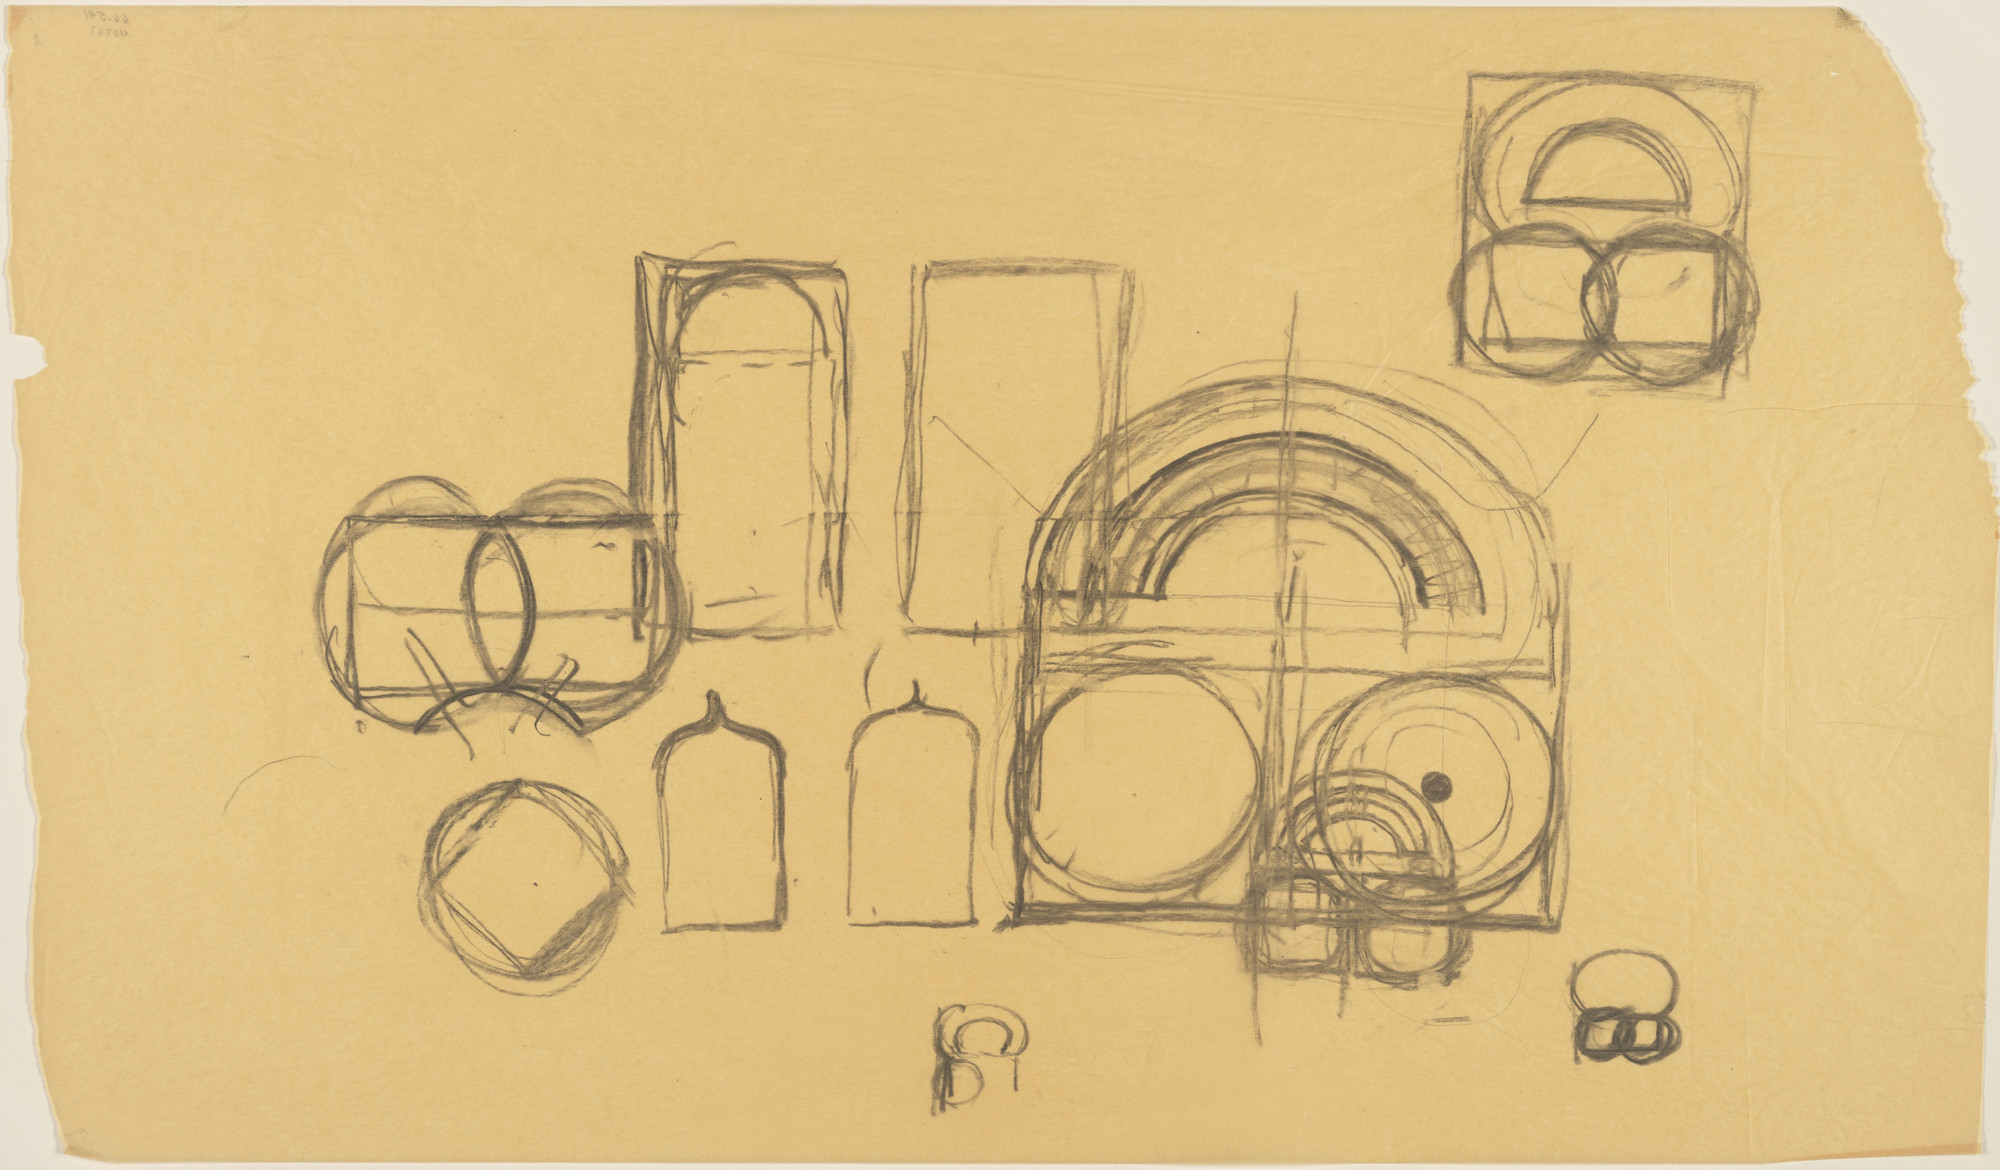 Louis I. Kahn. Sher-e-Bangla Nagar, Capital of Bangladesh, Dhaka, Bangladesh, Prayer Hall: plan sketches. 1965